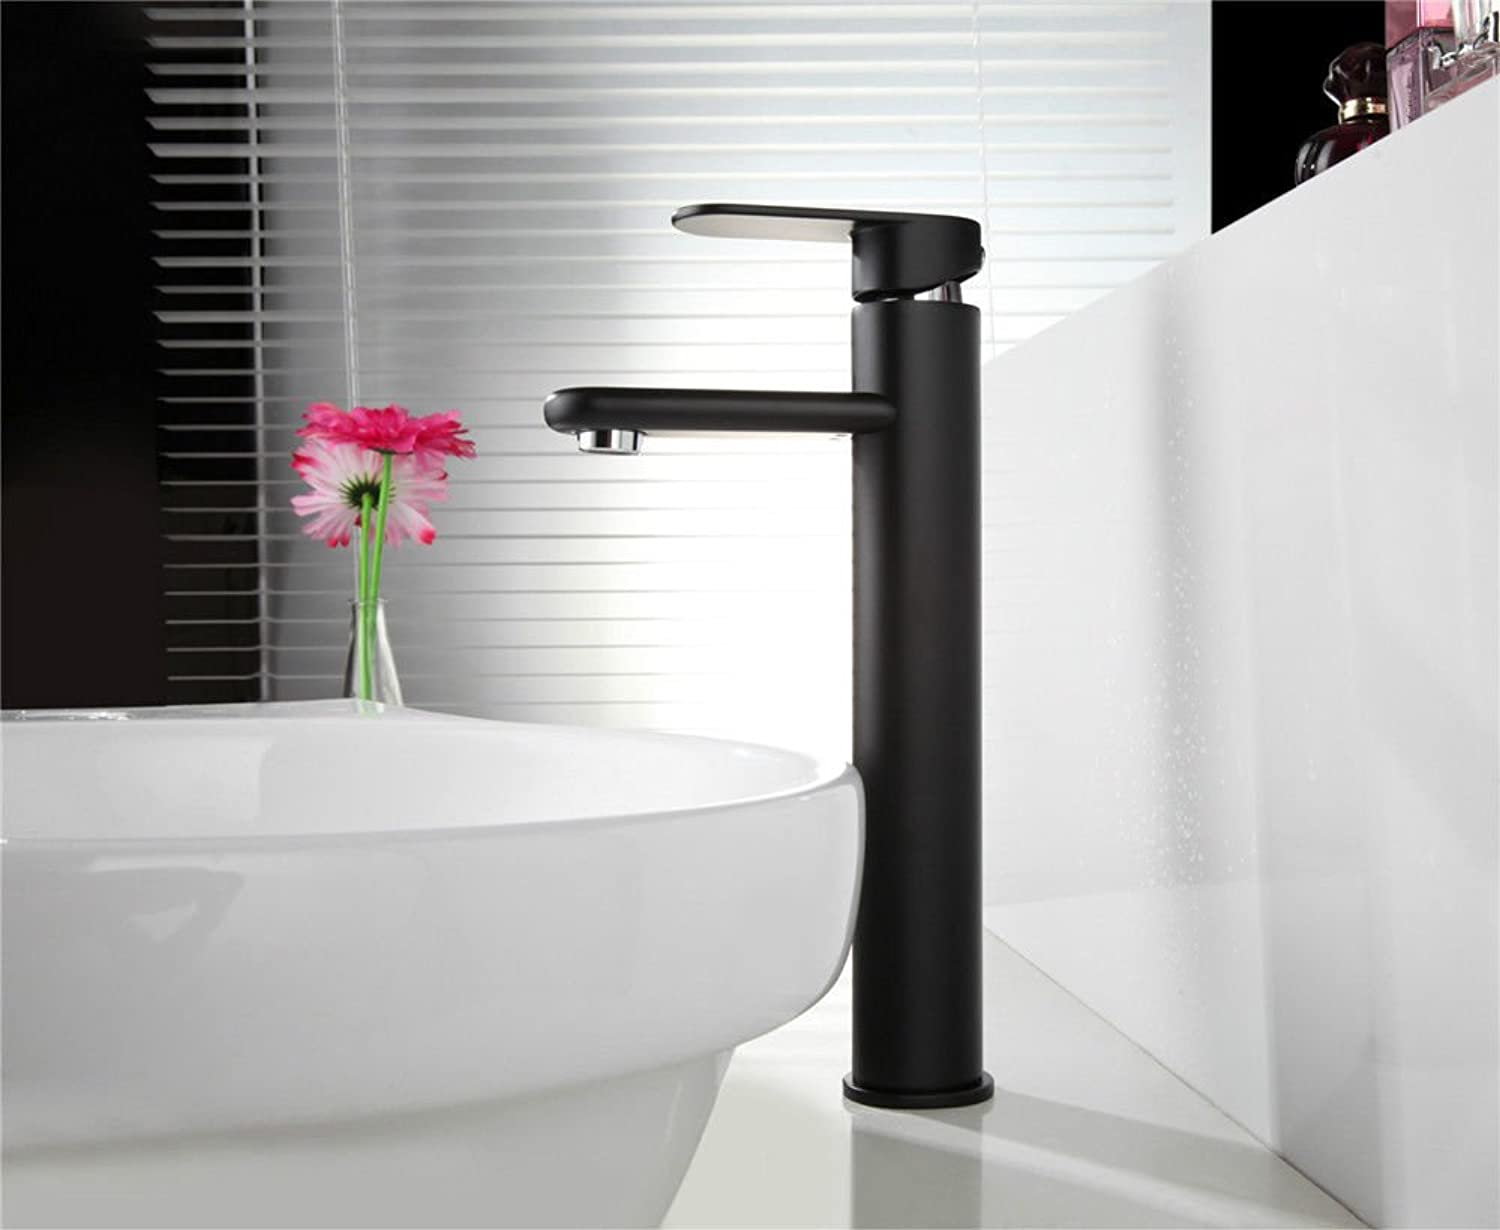 Basin Faucet Frosted Paint Faucet hot and Cold Water Faucet Black Matte Round Long Mouth Single Hole Single Handle